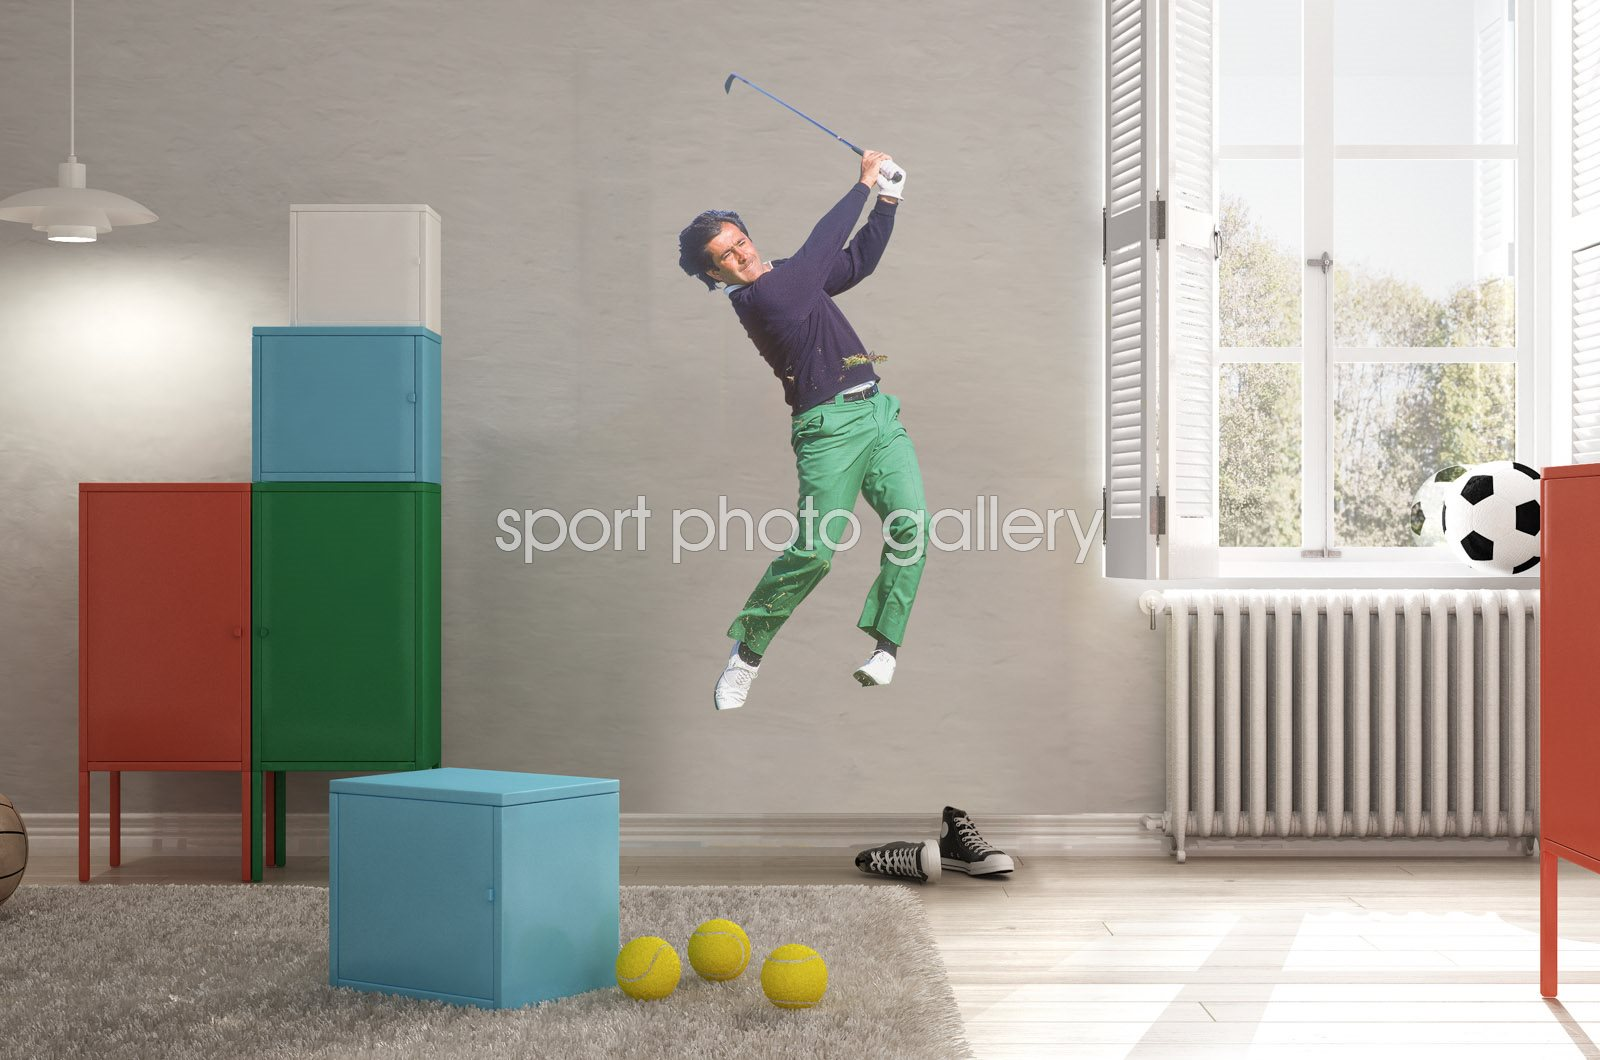 Seve Ballesteros Royal Lytham 1988 Wall Sticker